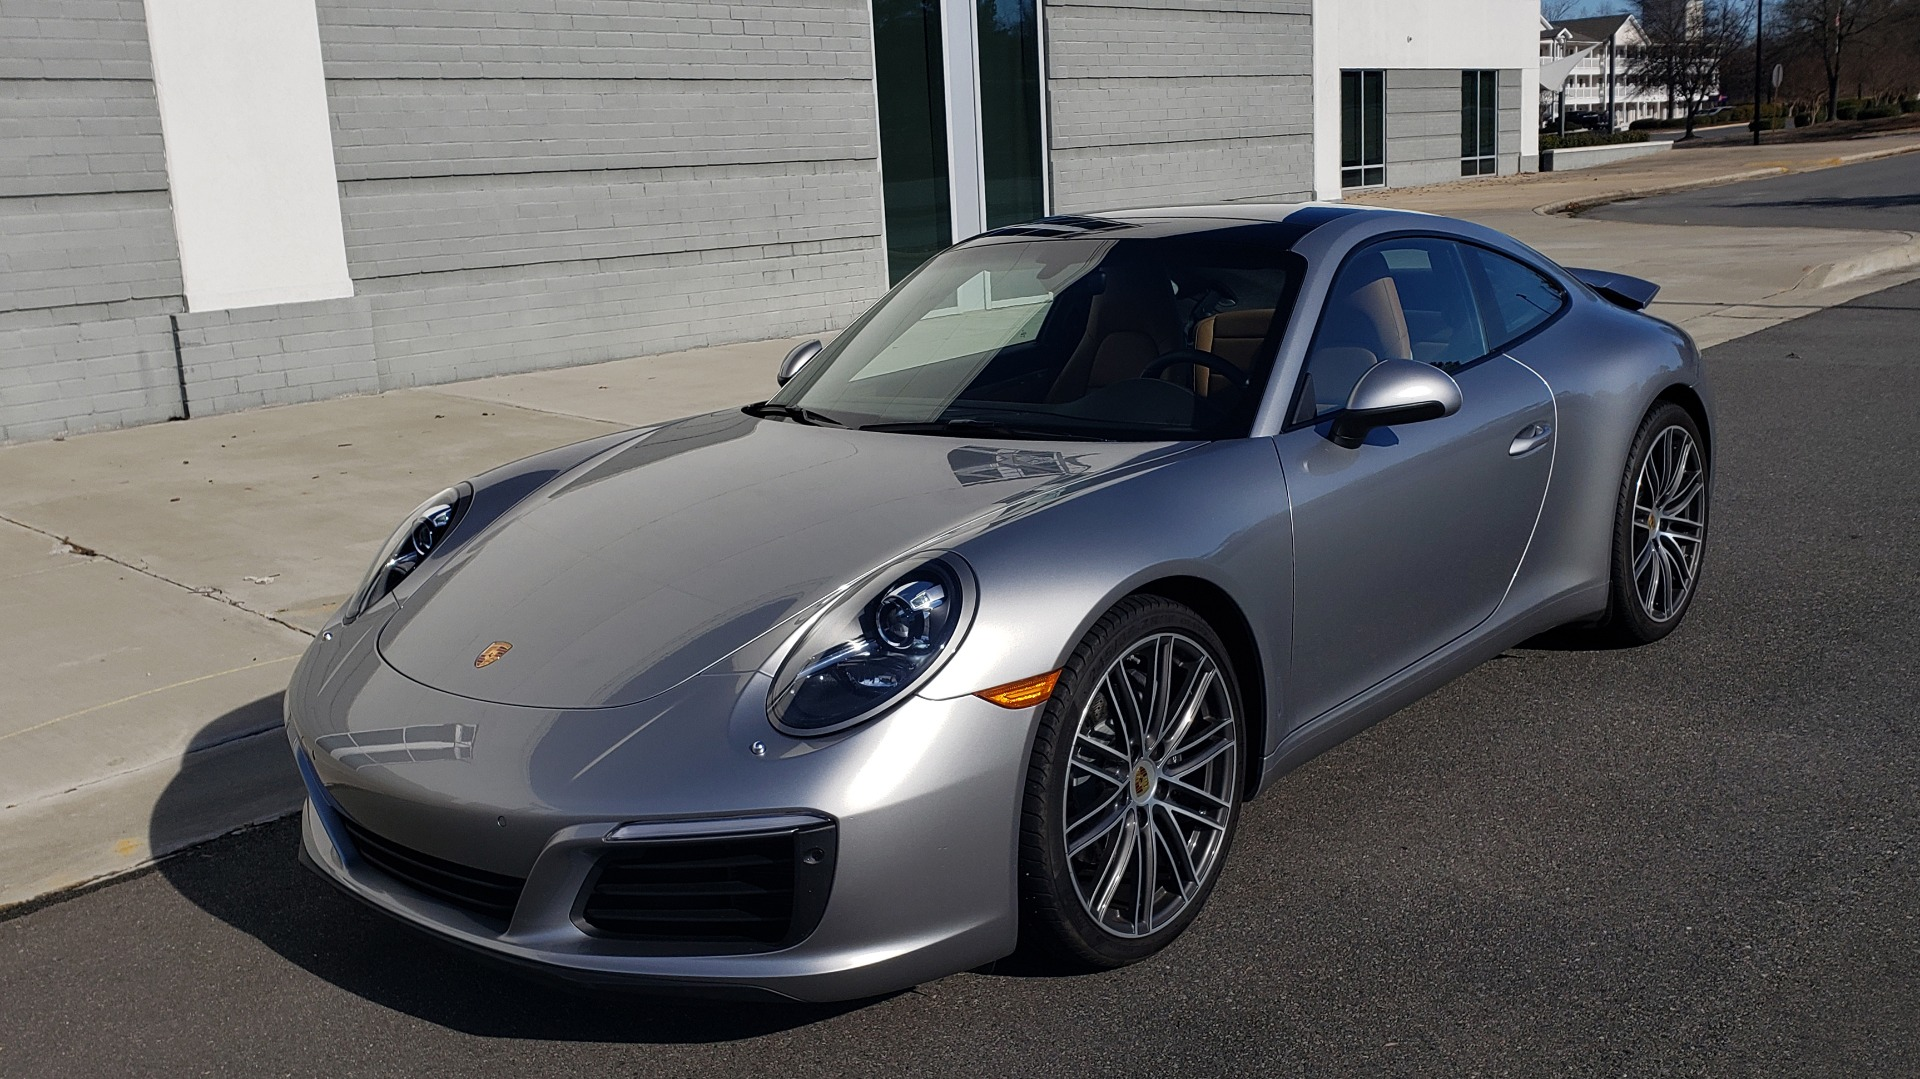 Used 2017 Porsche 911 CARRERA COUPE / 3.0L / 7-SPD MAN / NAV / PDLS / SUNROOF / REARVIEW for sale Sold at Formula Imports in Charlotte NC 28227 2